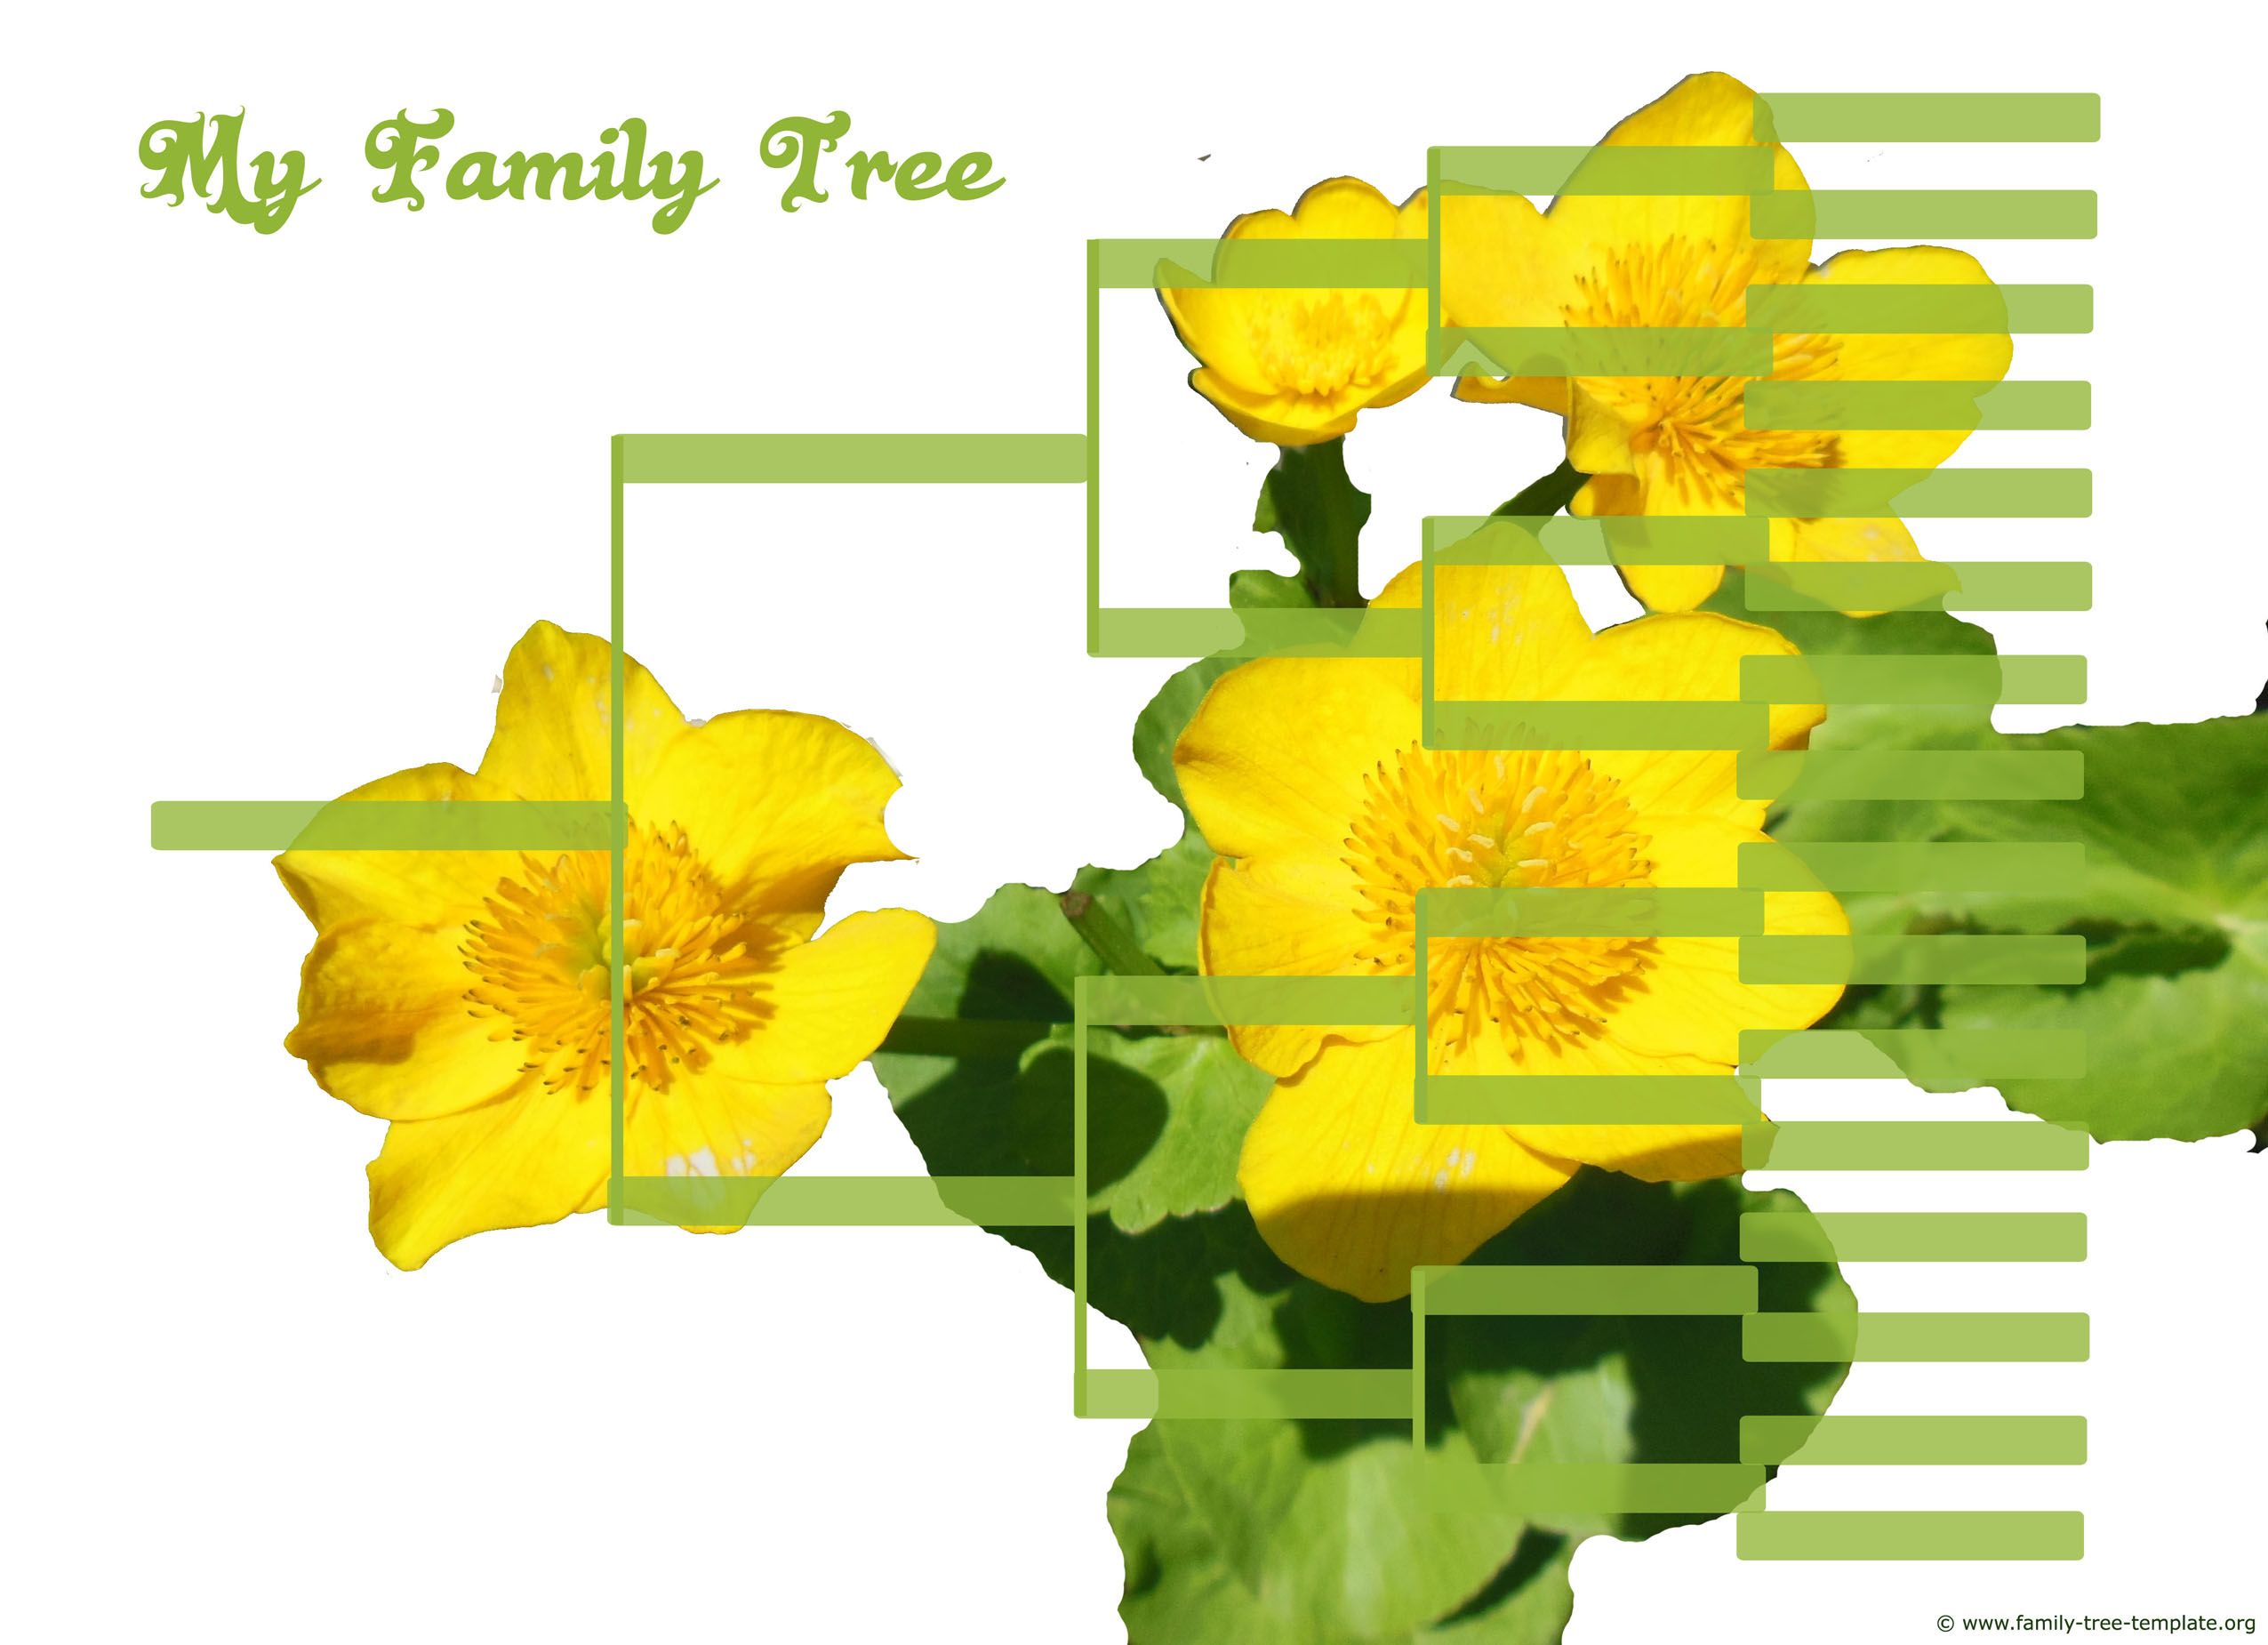 Large extended genalogy tree with yellow flowers